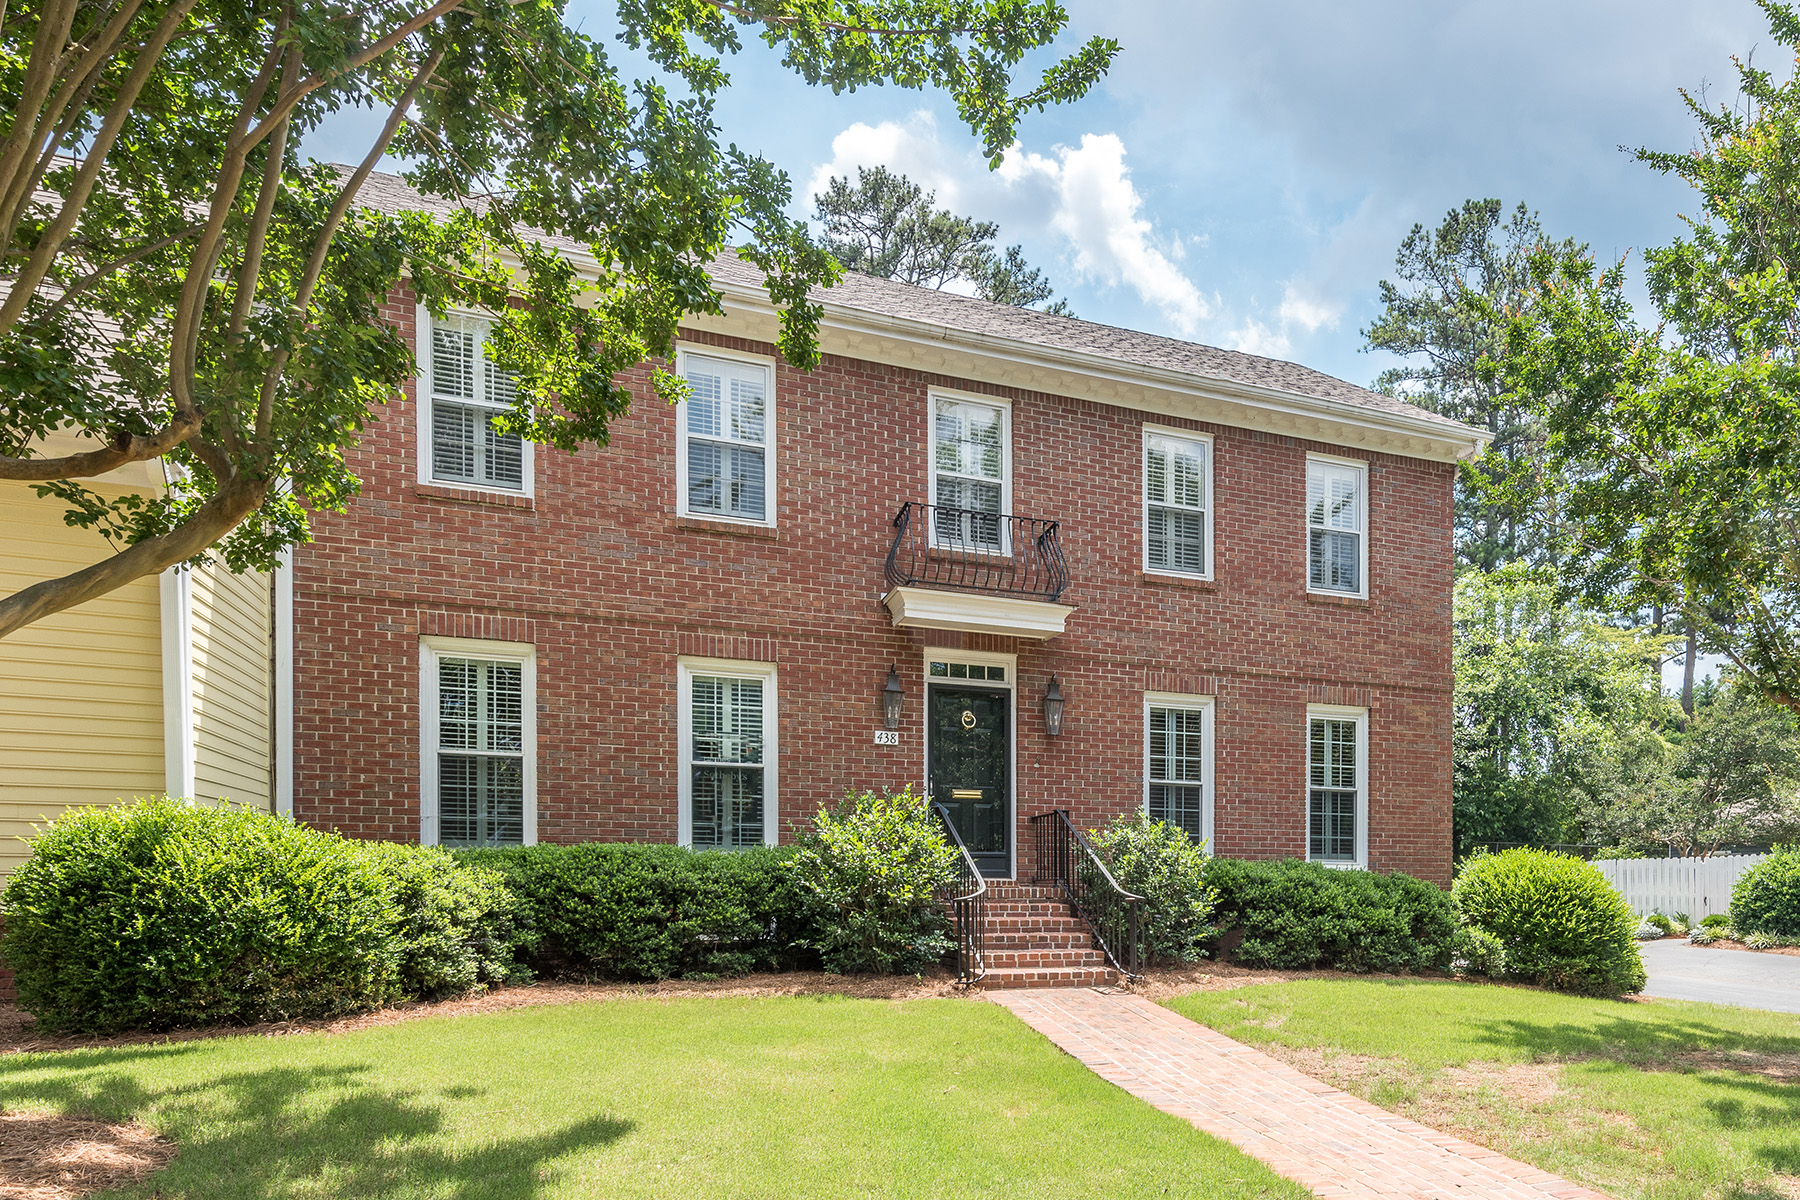 Townhouse for Sale at Stately Townhome in The Commons 438 Chowning Place Marietta, Georgia 30064 United States